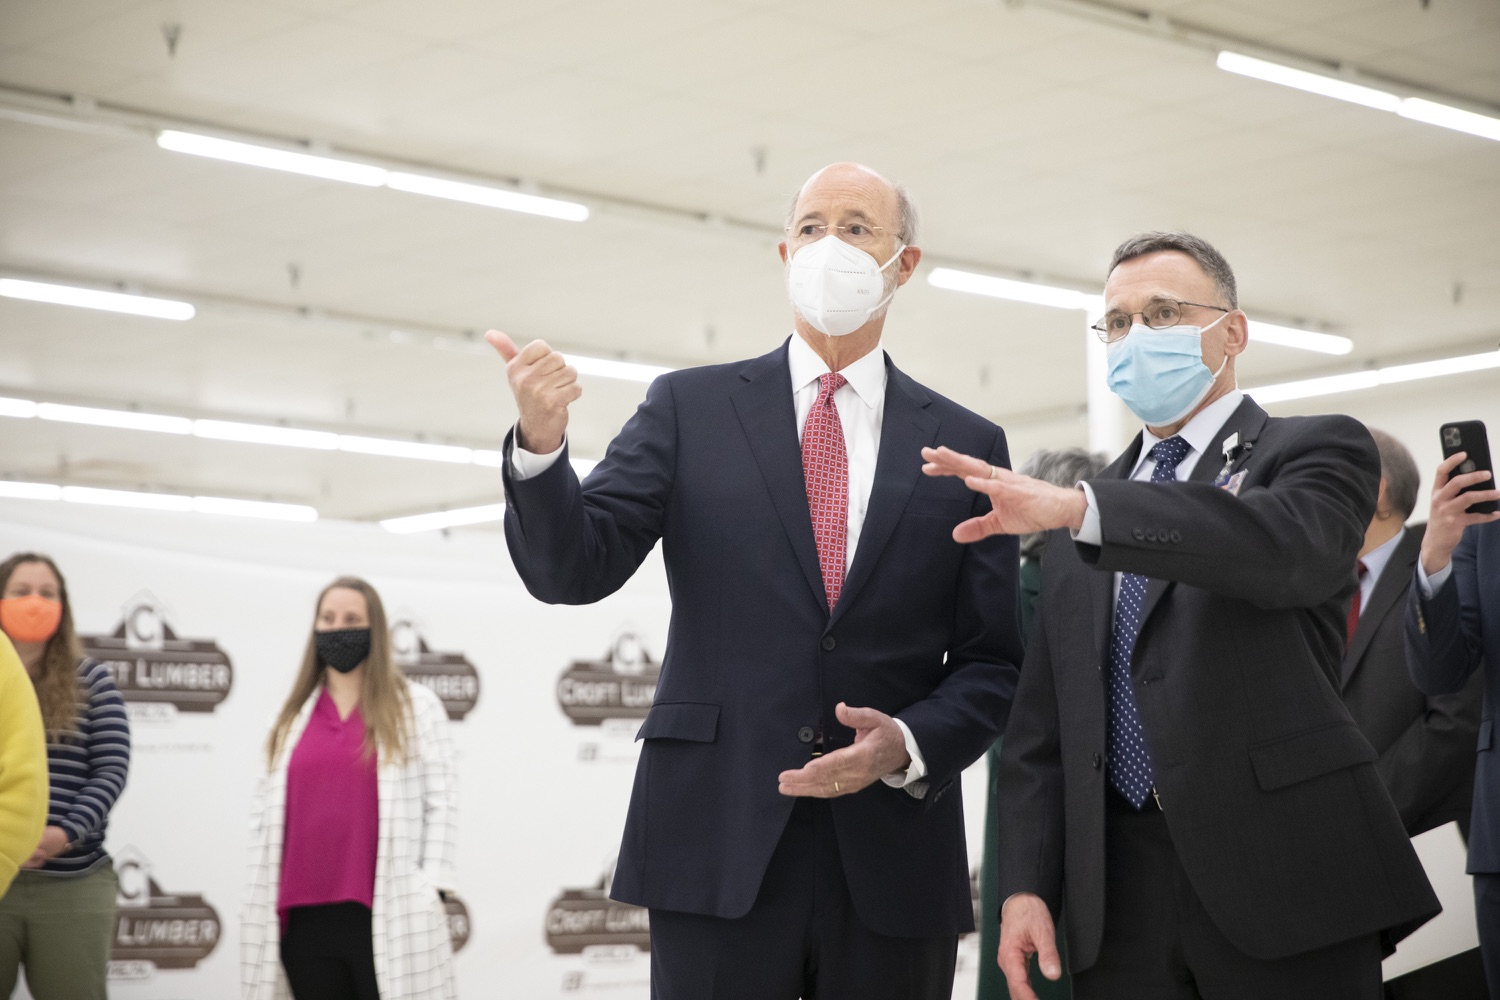 """<a href=""""https://filesource.wostreaming.net/commonwealthofpa/photo/18682_gov_vaccineClinic_dz_018.jpg"""" target=""""_blank"""">⇣Download Photo<br></a>Pennsylvania Governor Tom Wolf touring the regional vaccination clinic with Dr. J. Michael Scalzone, MD.  Governor Tom Wolf today visited the Guthrie Health vaccine clinic in Sayre, Bradford County today to tour this clinic providing vaccines to a large swath of rural residents and to talk about progress in vaccinating Pennsylvanians now that eligibility is open to all individuals age 16 and older.  Sayre, PA   April 21, 2021"""